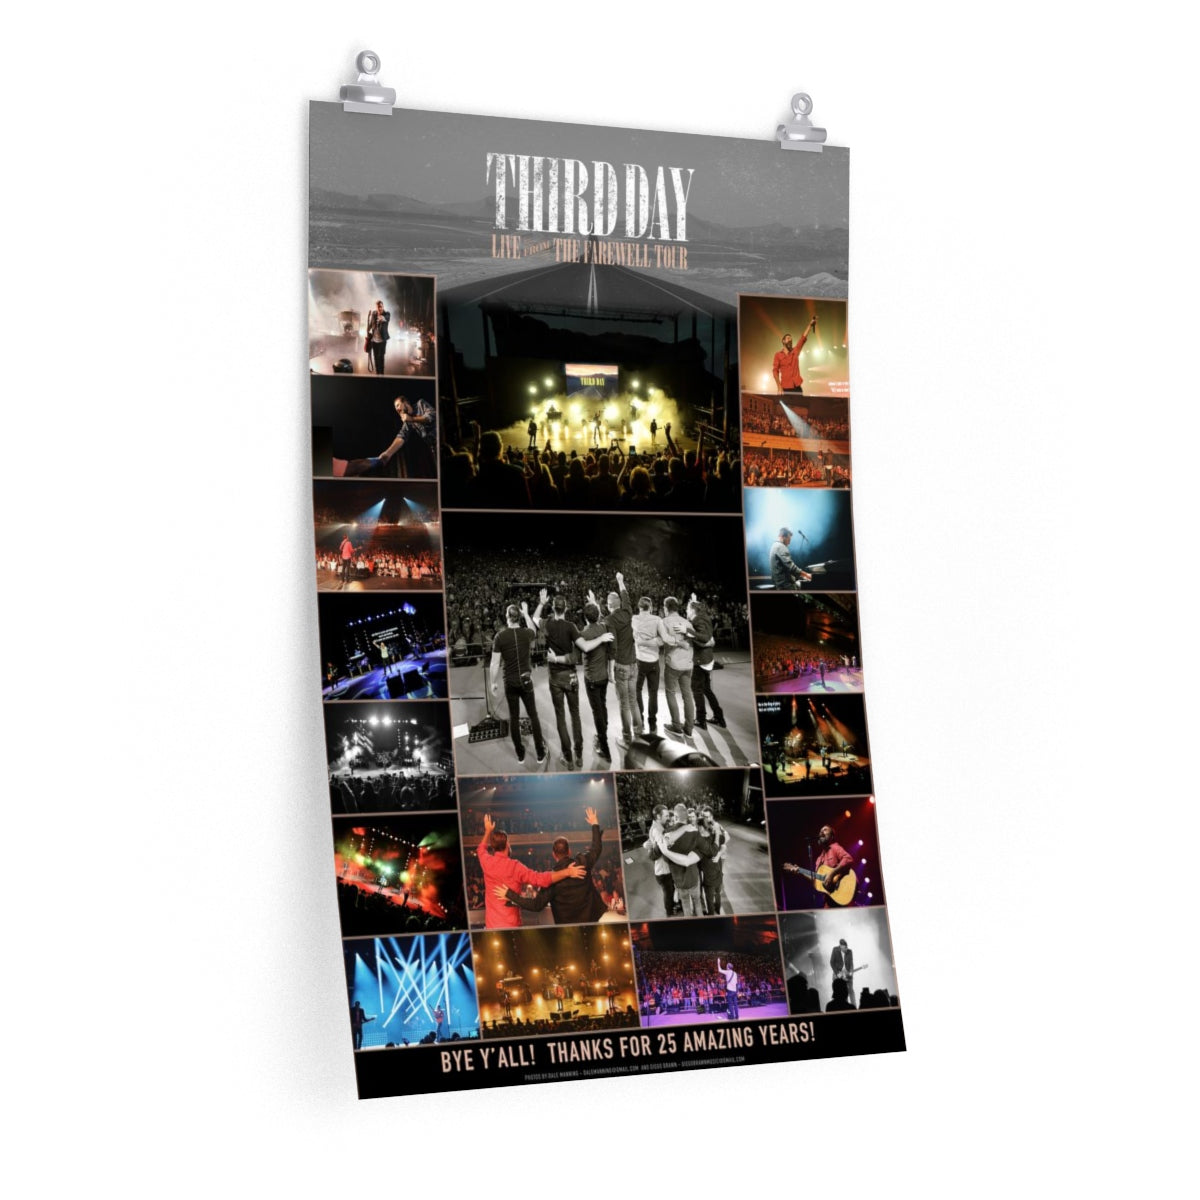 Third Day Limited Edition Farewell Tour photo poster